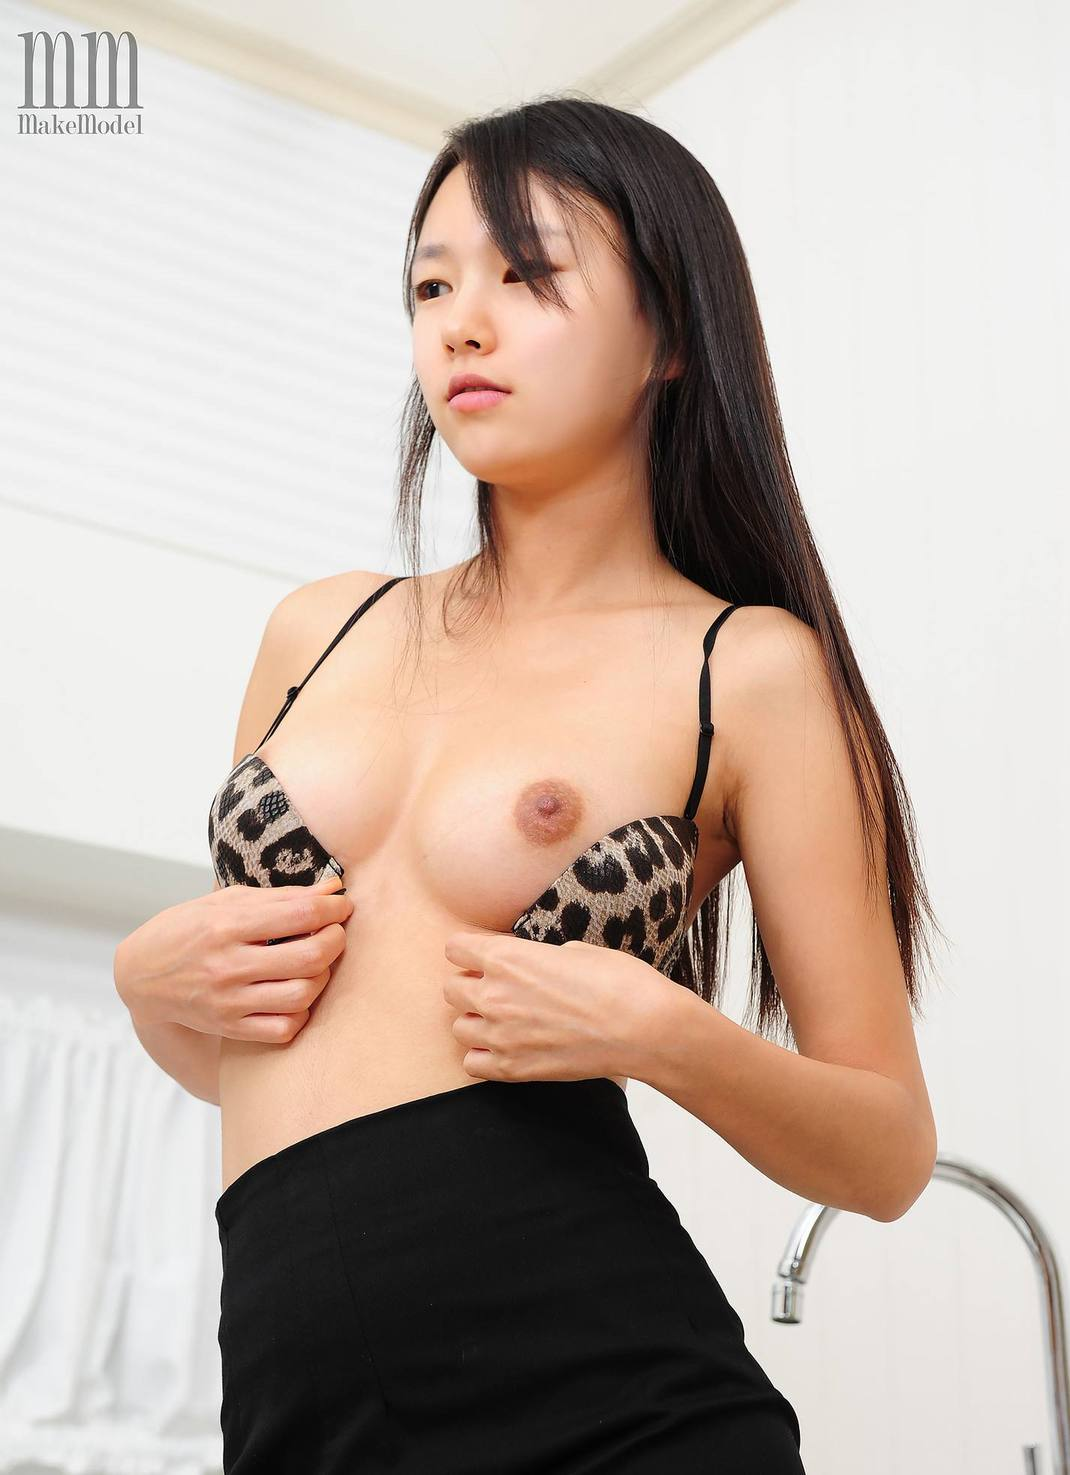 Interesting. Prompt, Two hot modles femalehavingsex that would